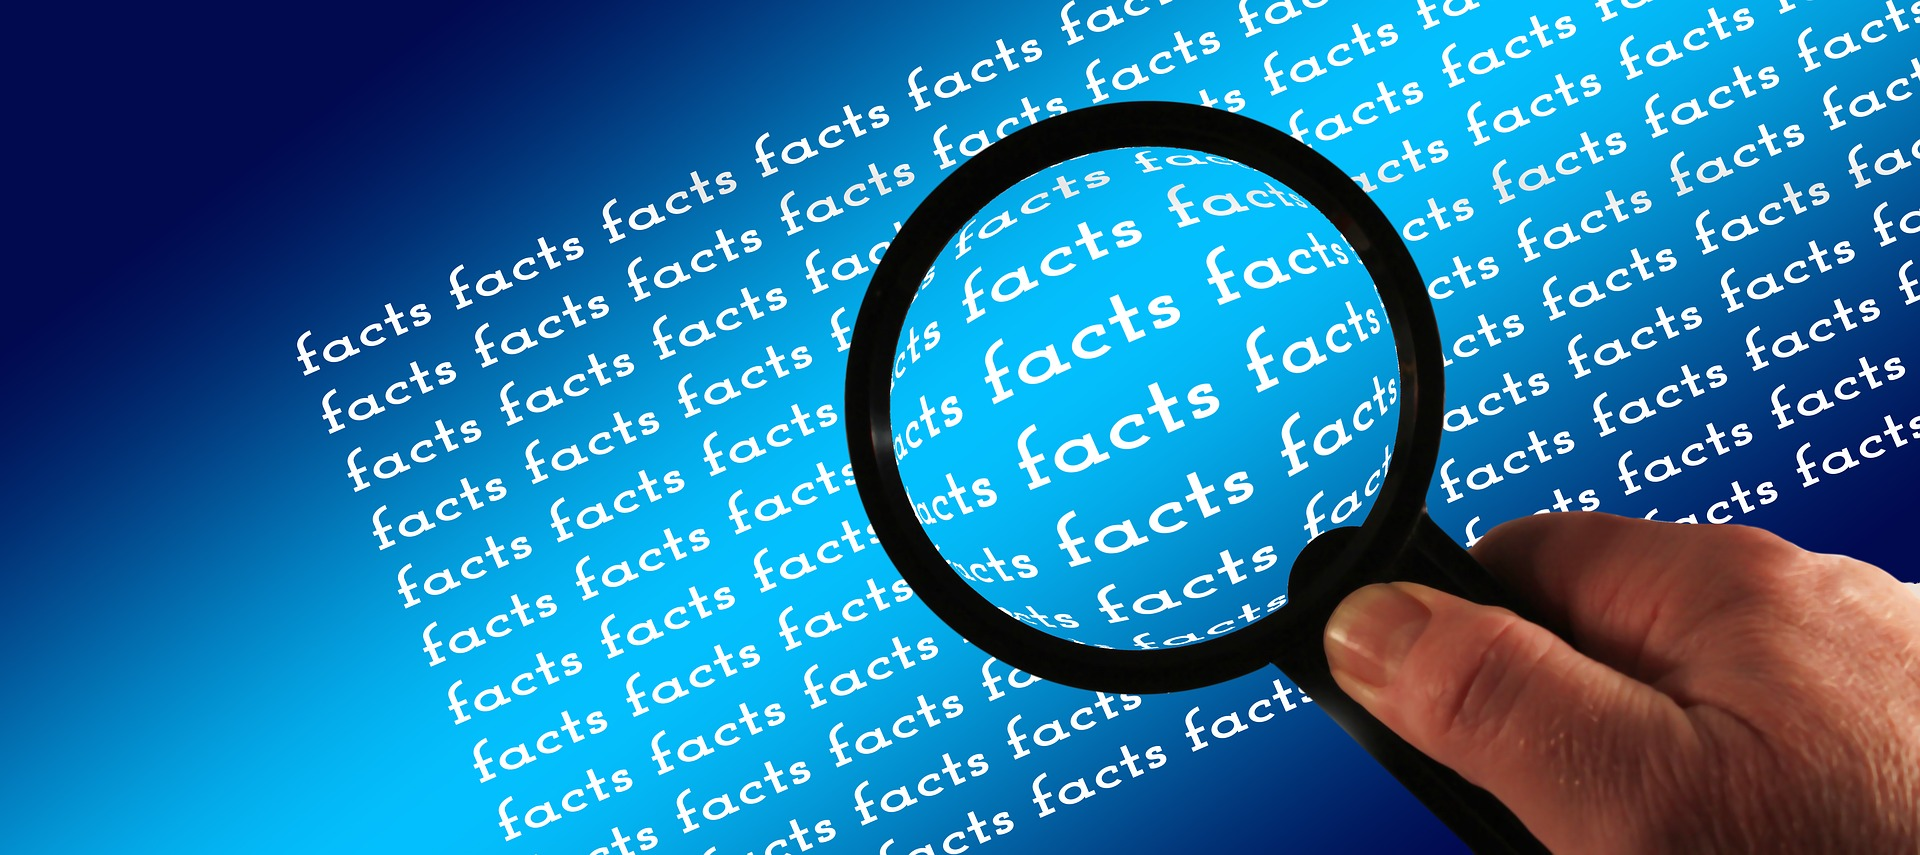 magnifying glass on facts